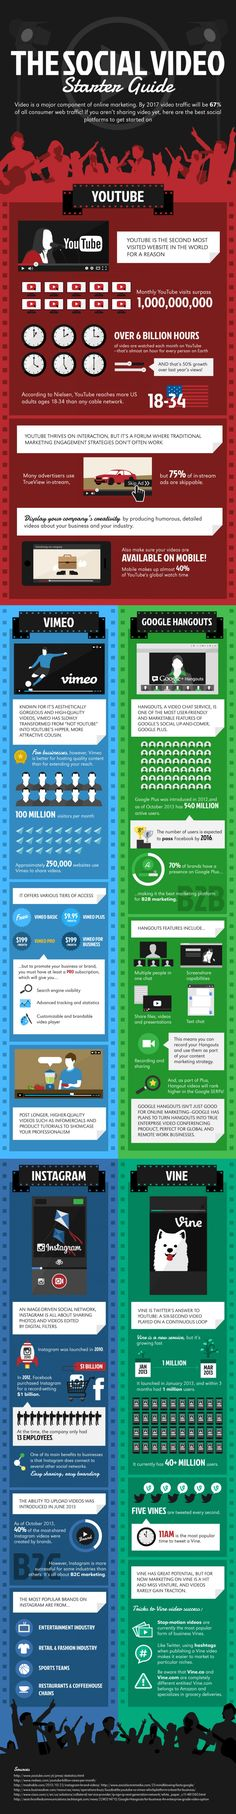 Why Video is the Best Form of Engagement #infographic | Marketing ...